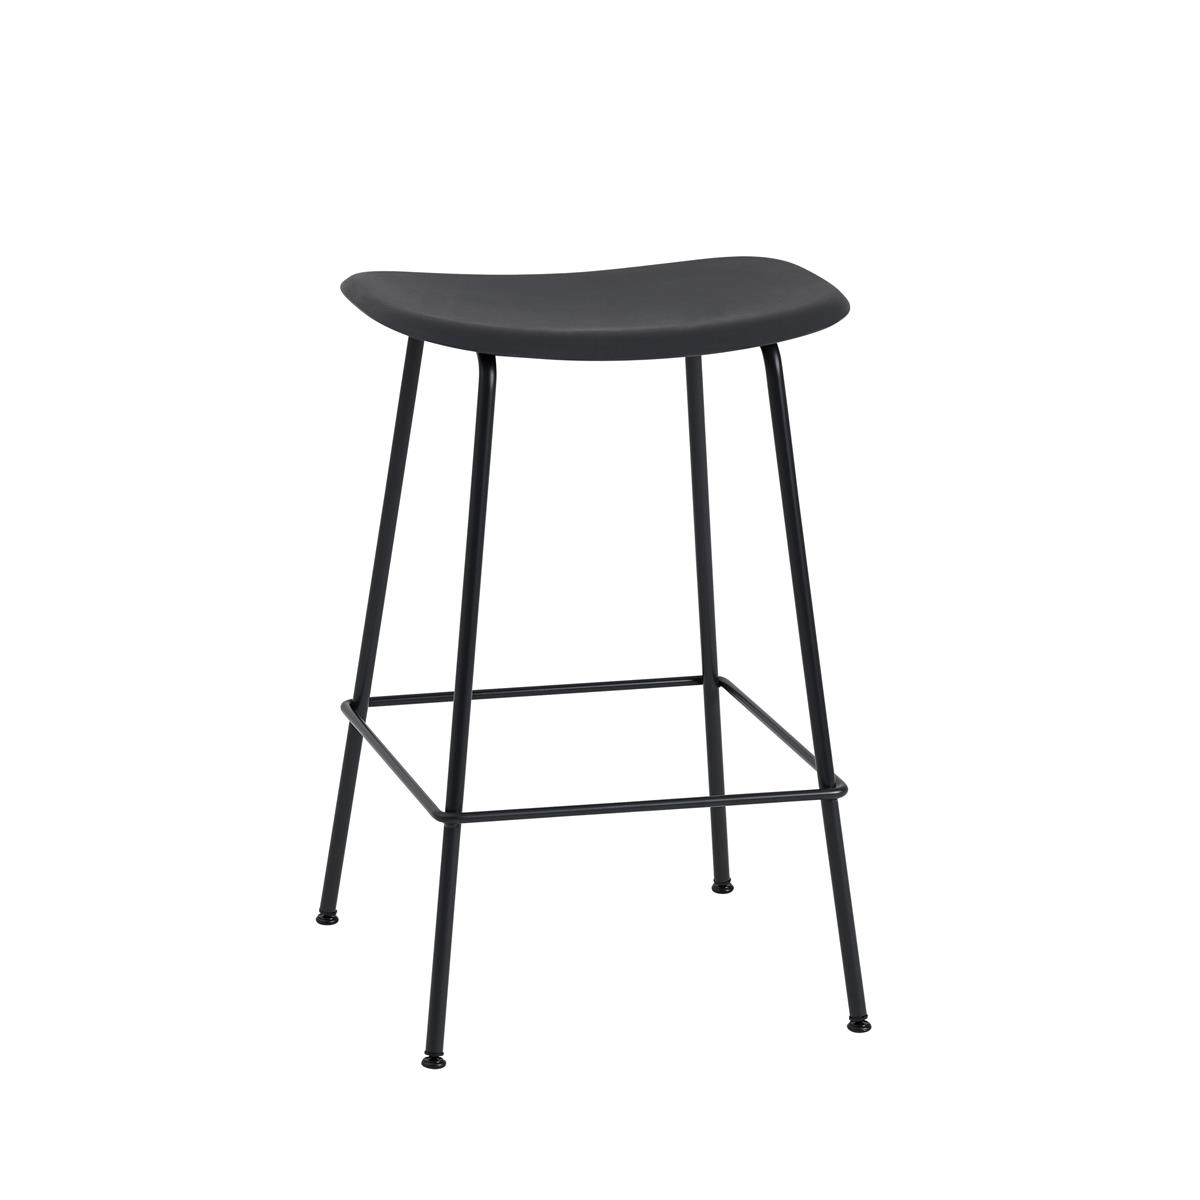 Fiber Bar Stool Tube Base H65 - Black